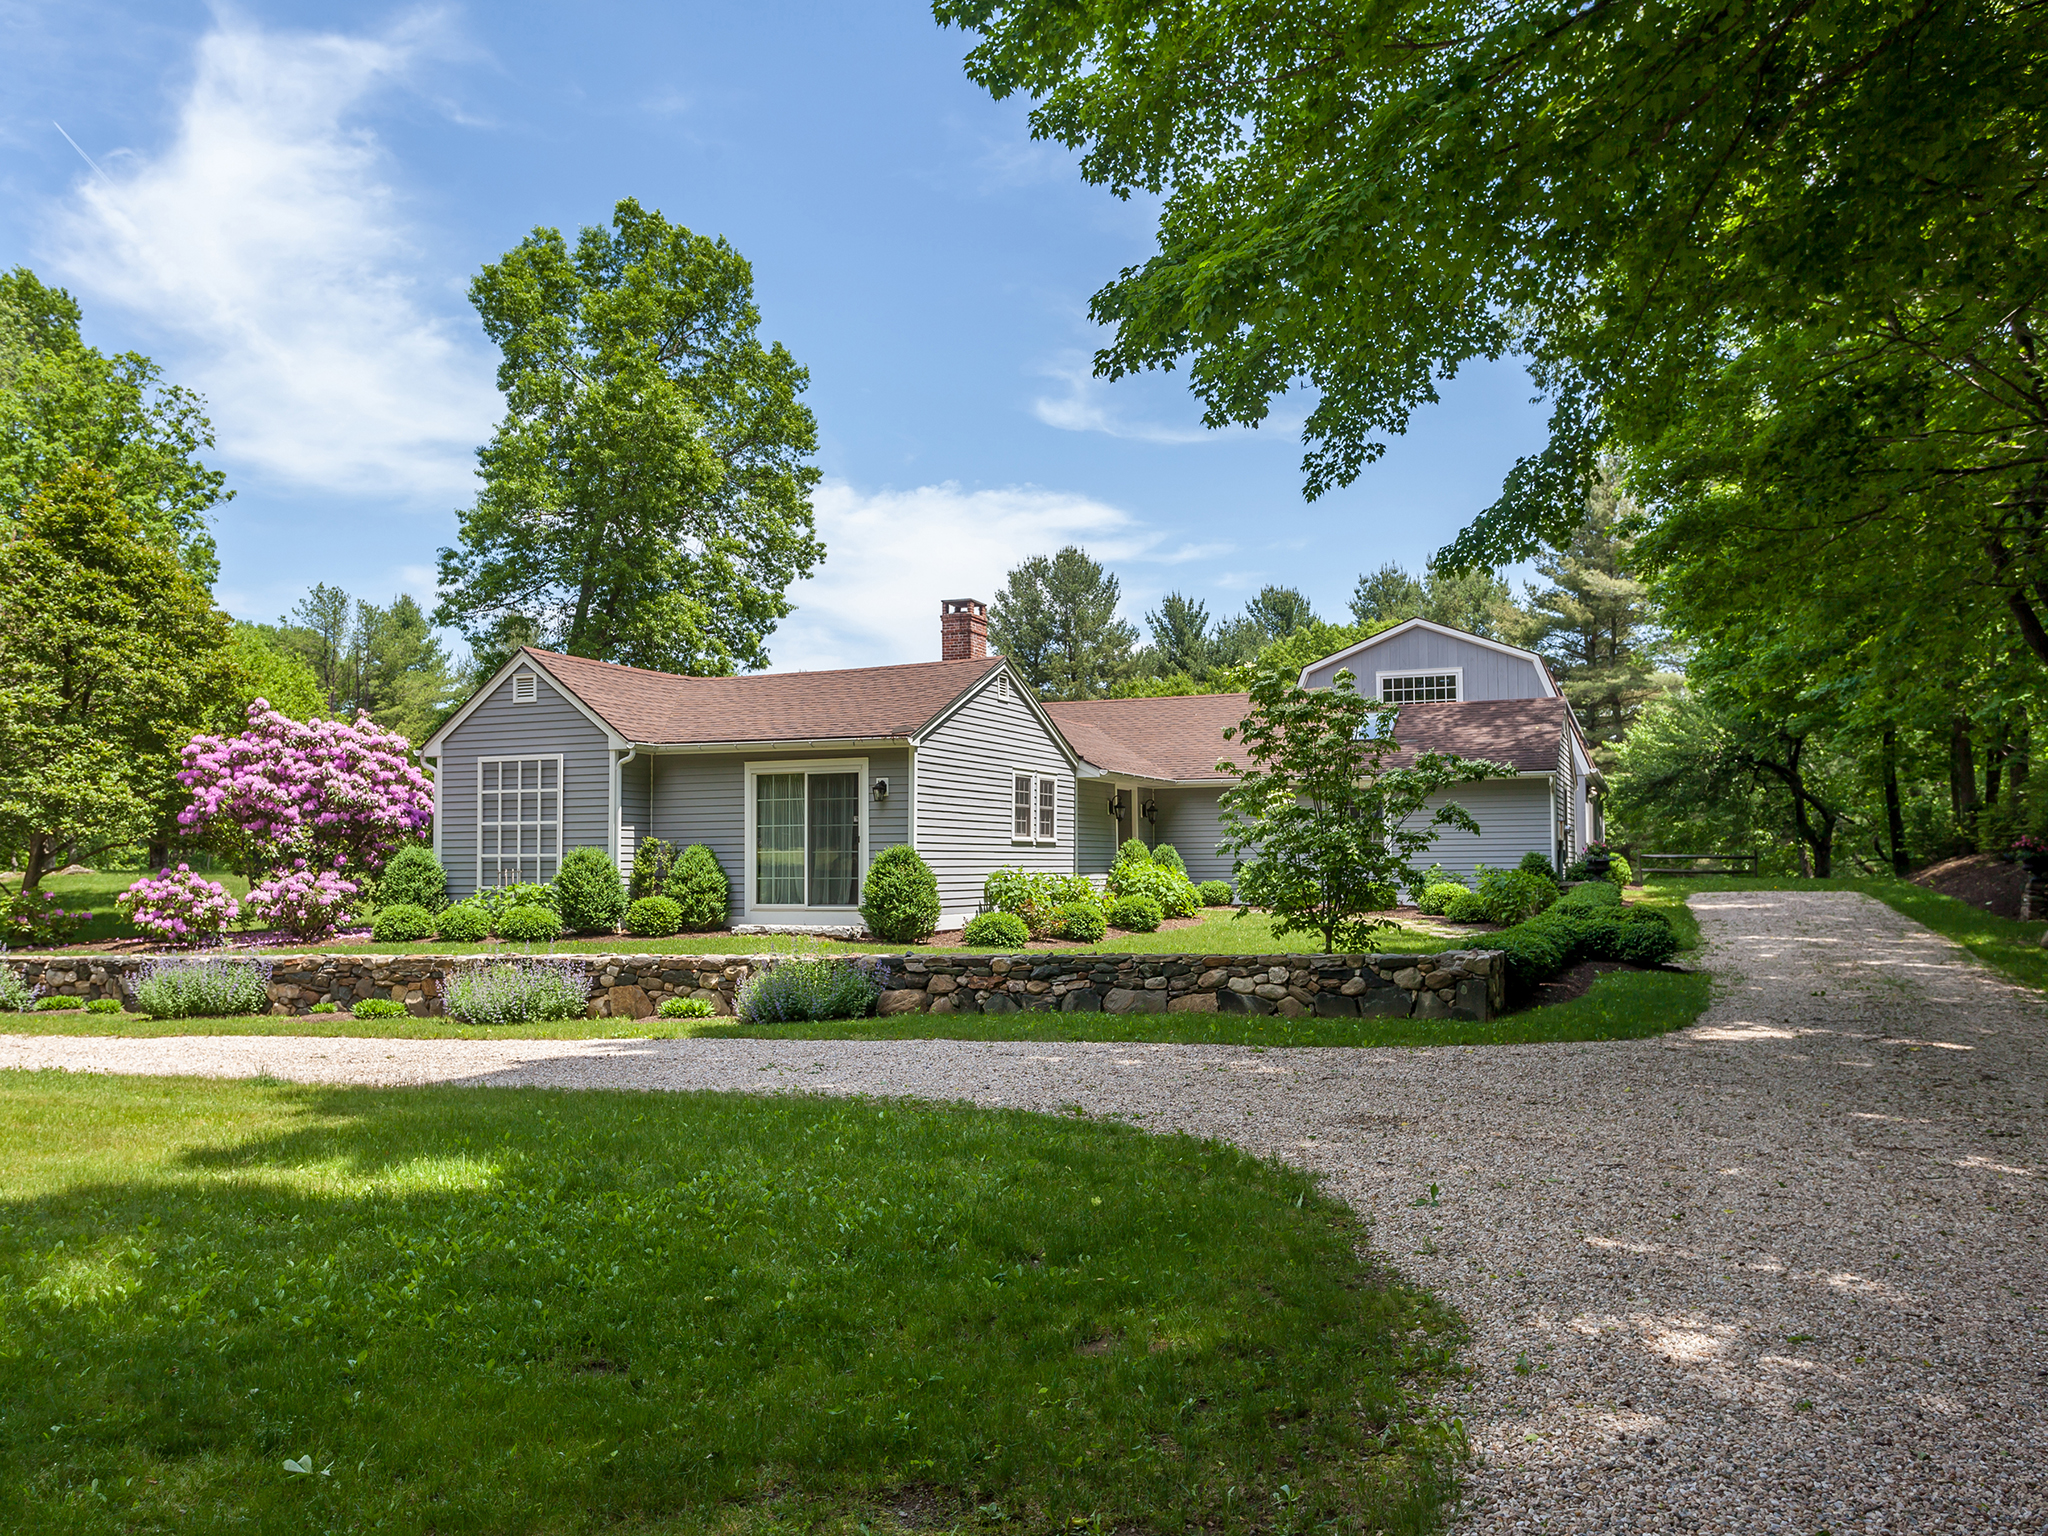 Single Family Home for Sale at Prime Washington Location 132 Shearer Rd Washington, Connecticut, 06793 United States